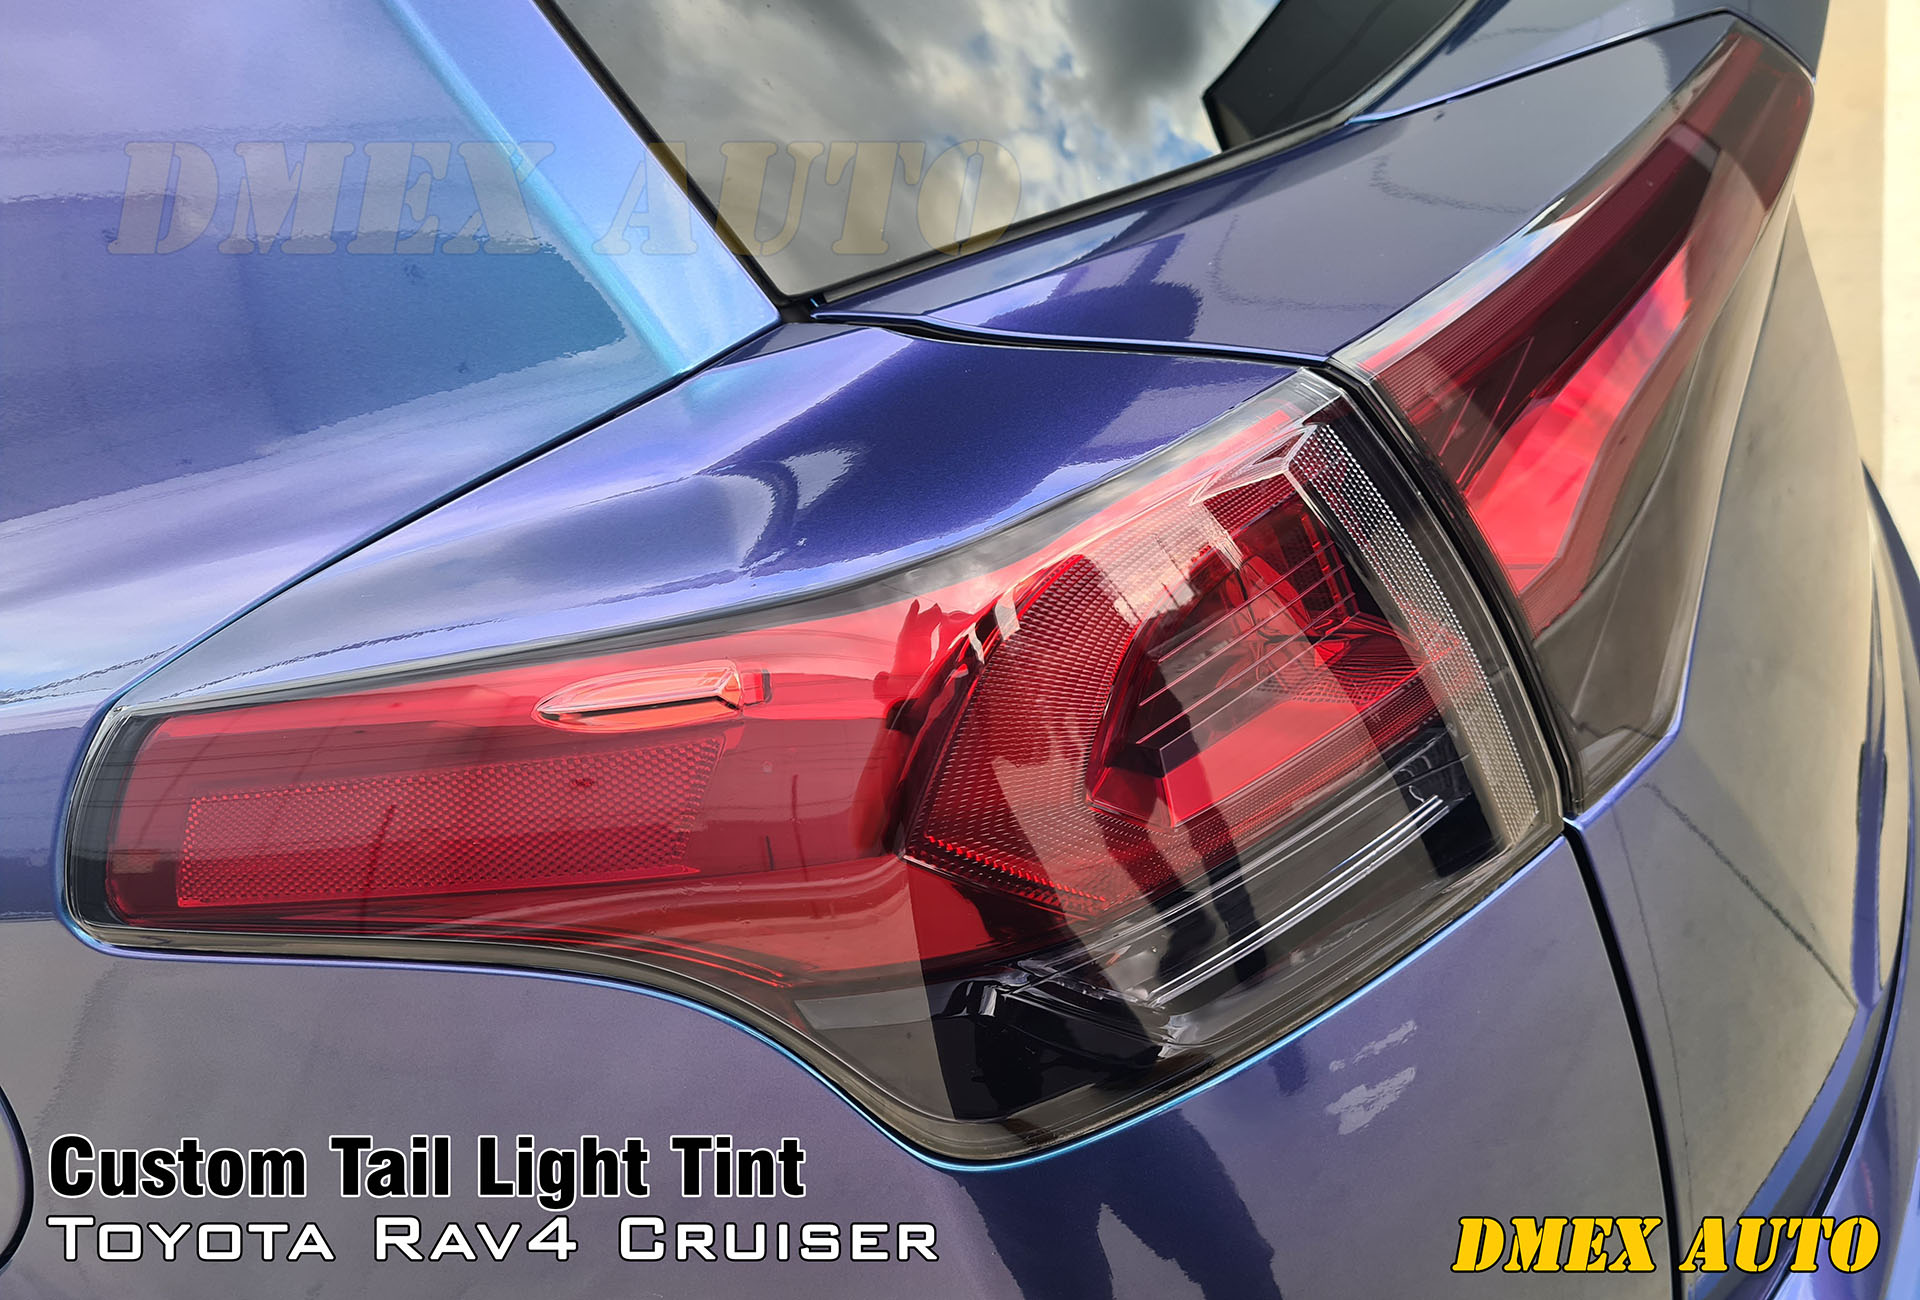 Rav4_Tail Light Tint_01_20201211_185237.